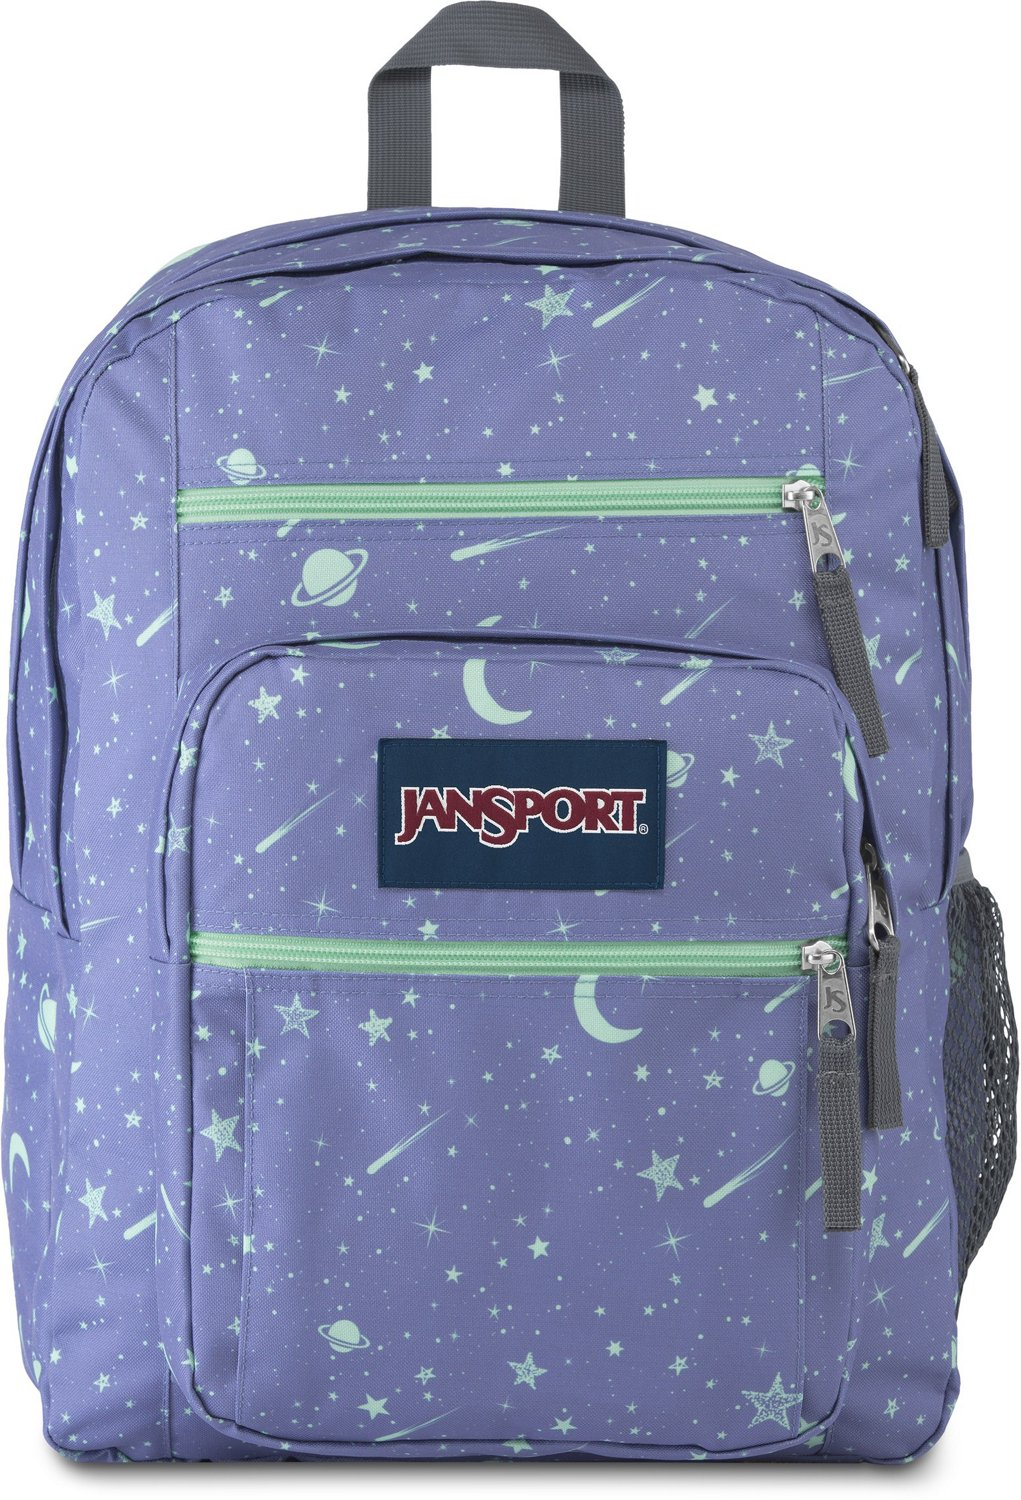 8e0edc474 Display product reviews for JanSport Big Student Backpack